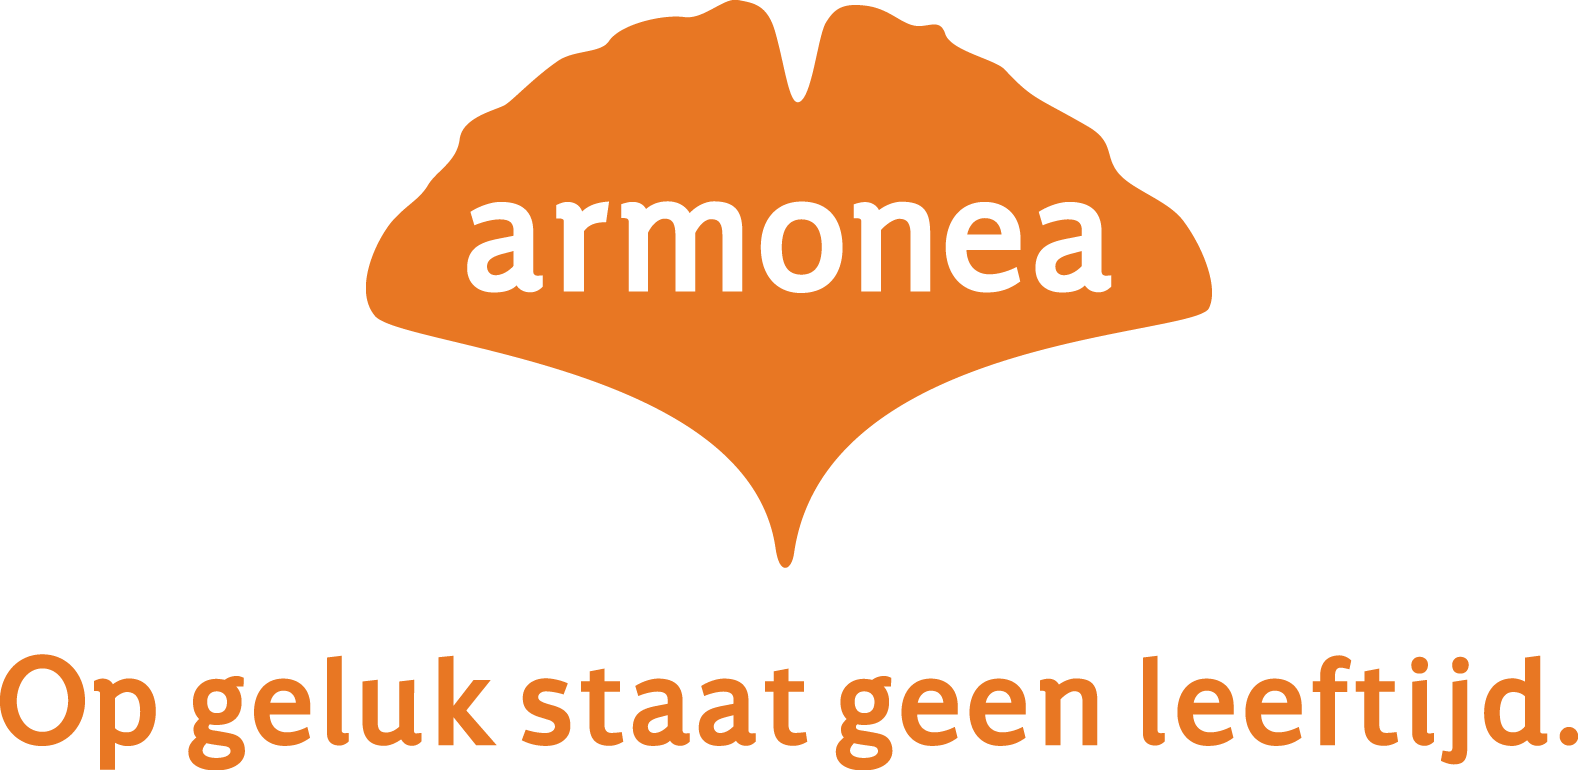 Armonea_rgb_pos_tcnl_orange_large.png